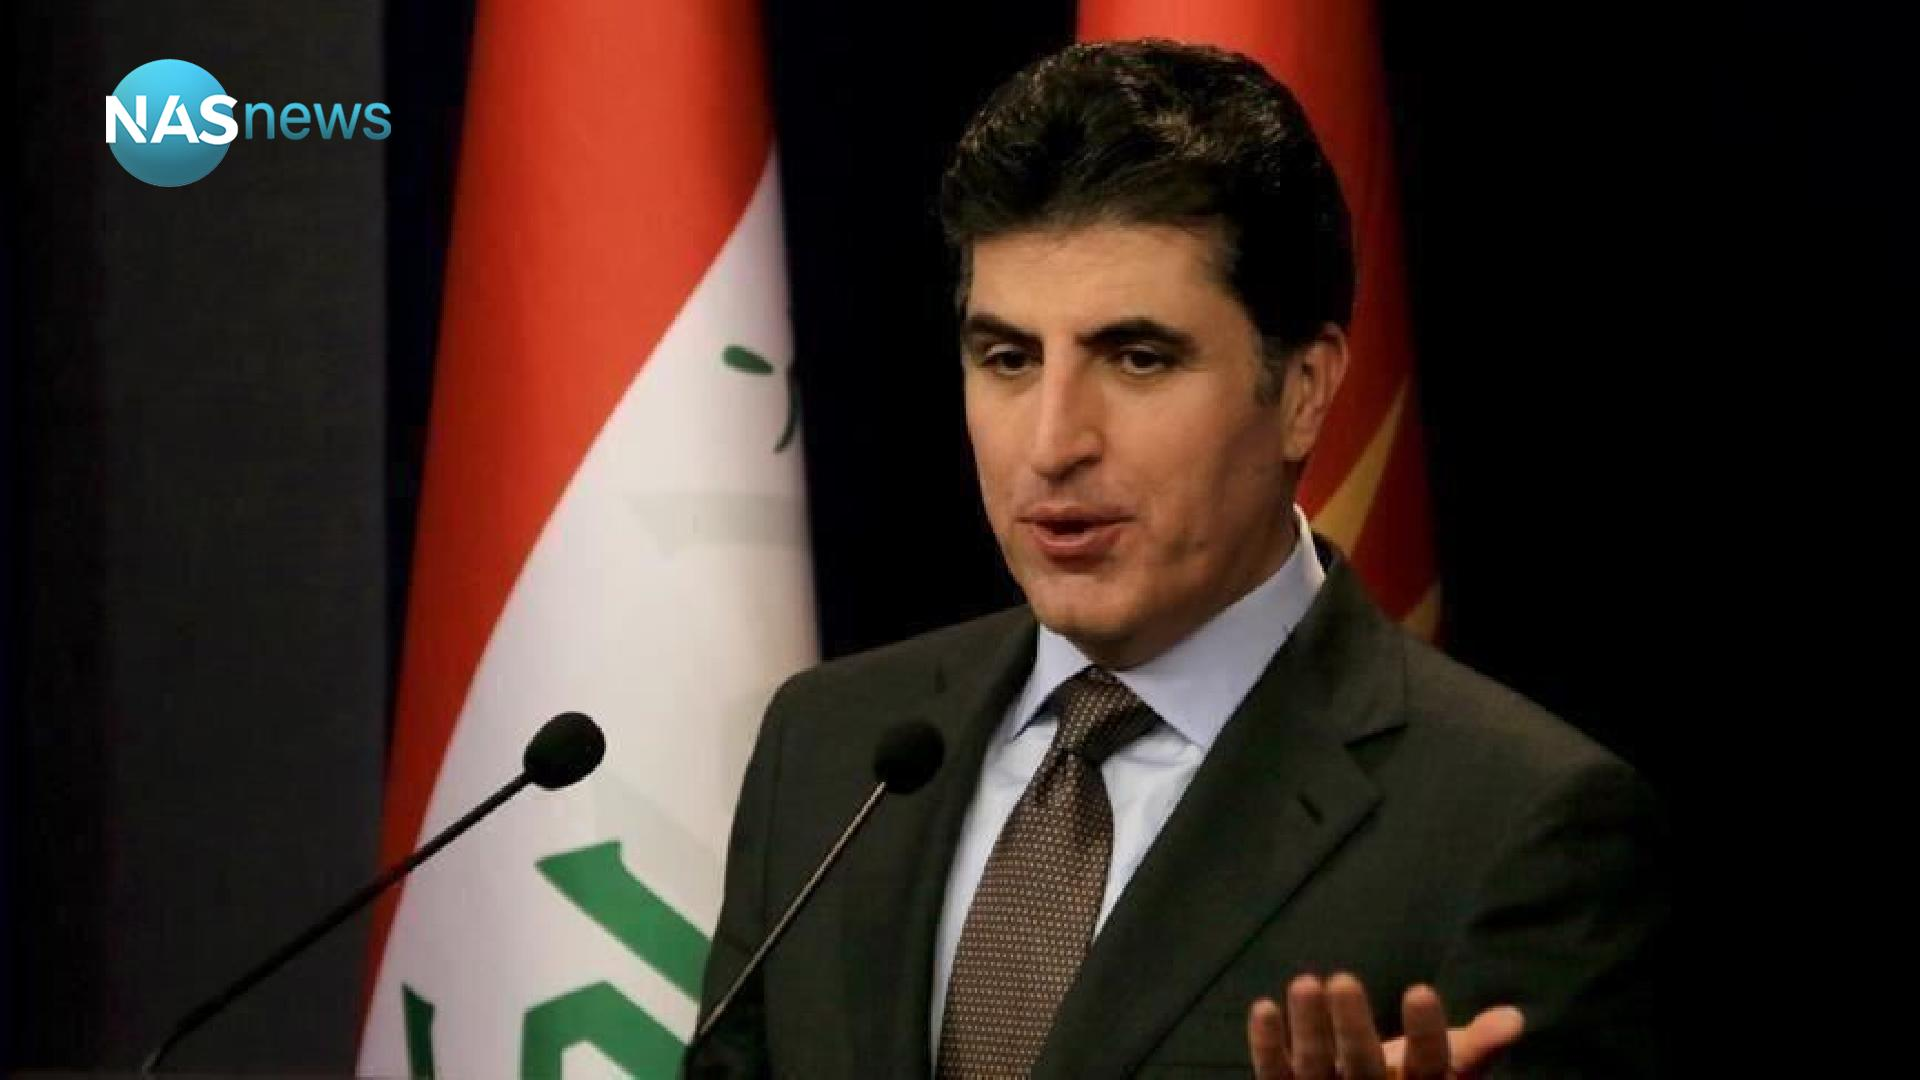 President of the Kurdistan region - Those who think that Article 140 is dead are deluded